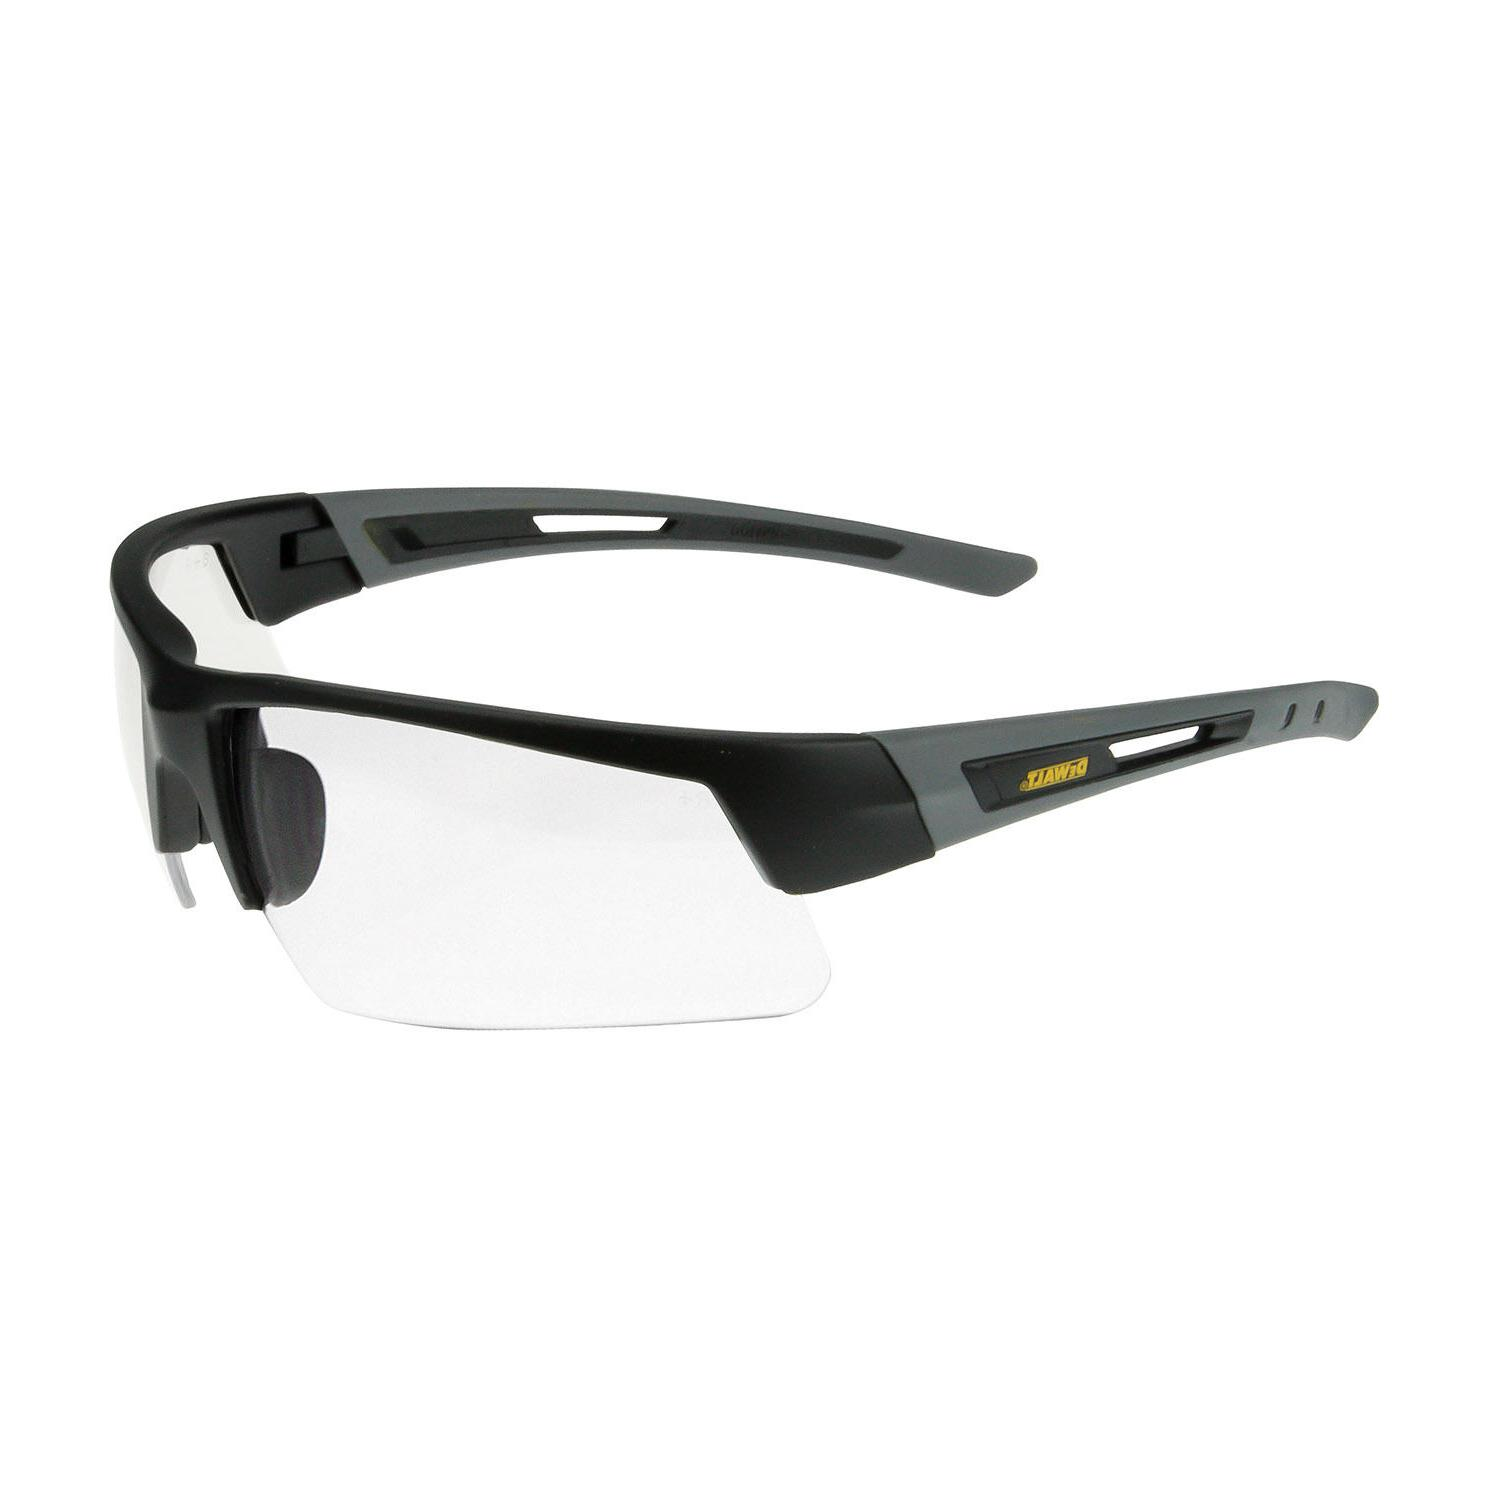 dpg100 1 crosscut safety glasses clear lens